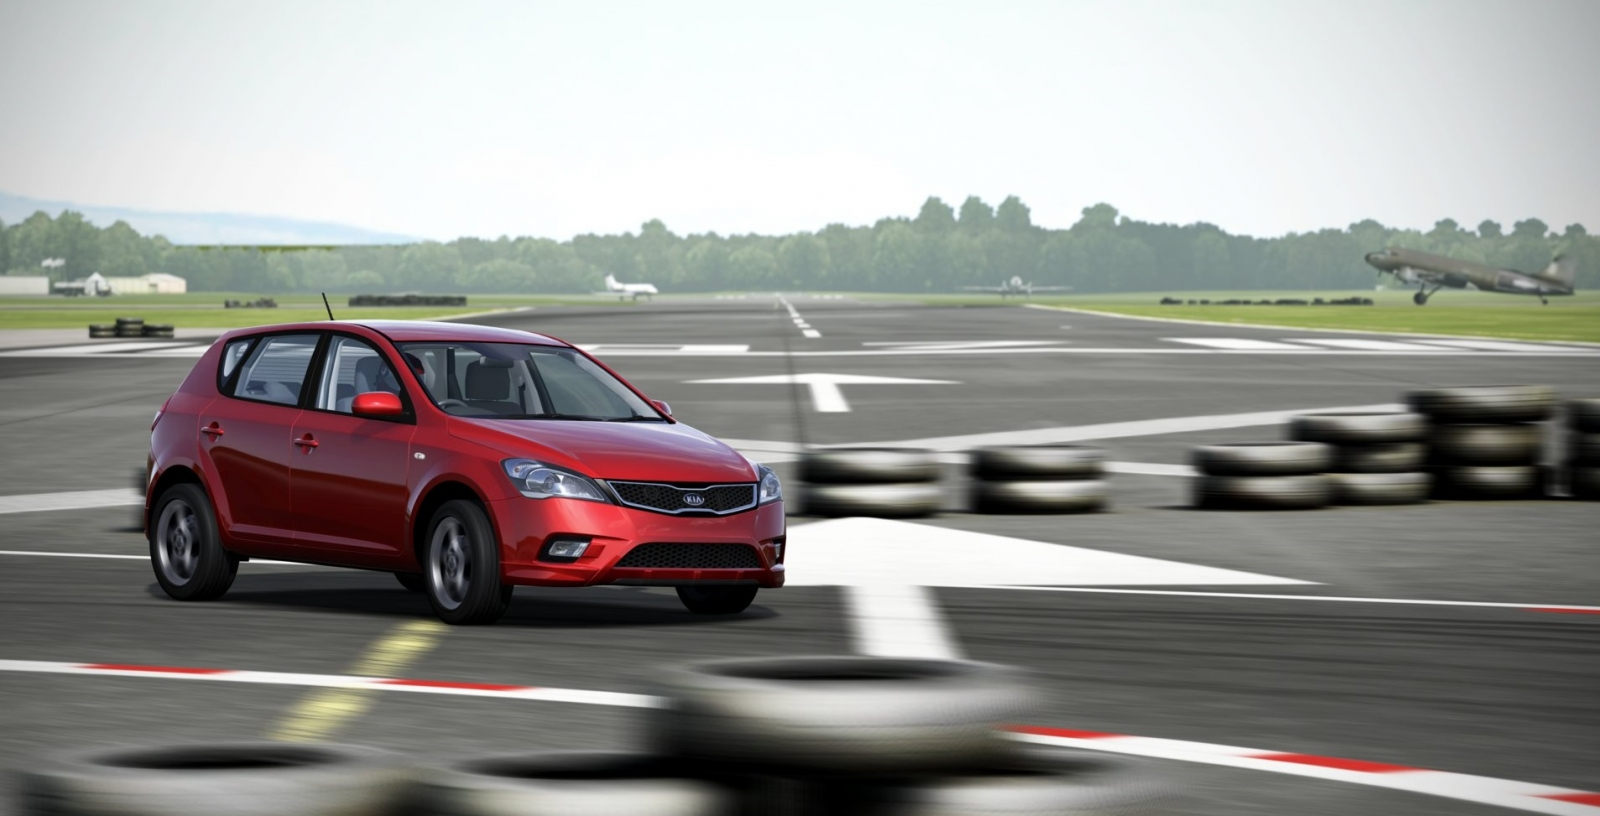 World Car Kia >> Forza 5 Top Gear Track vs Reality: Can Video Games Prepare You for Car Racing?